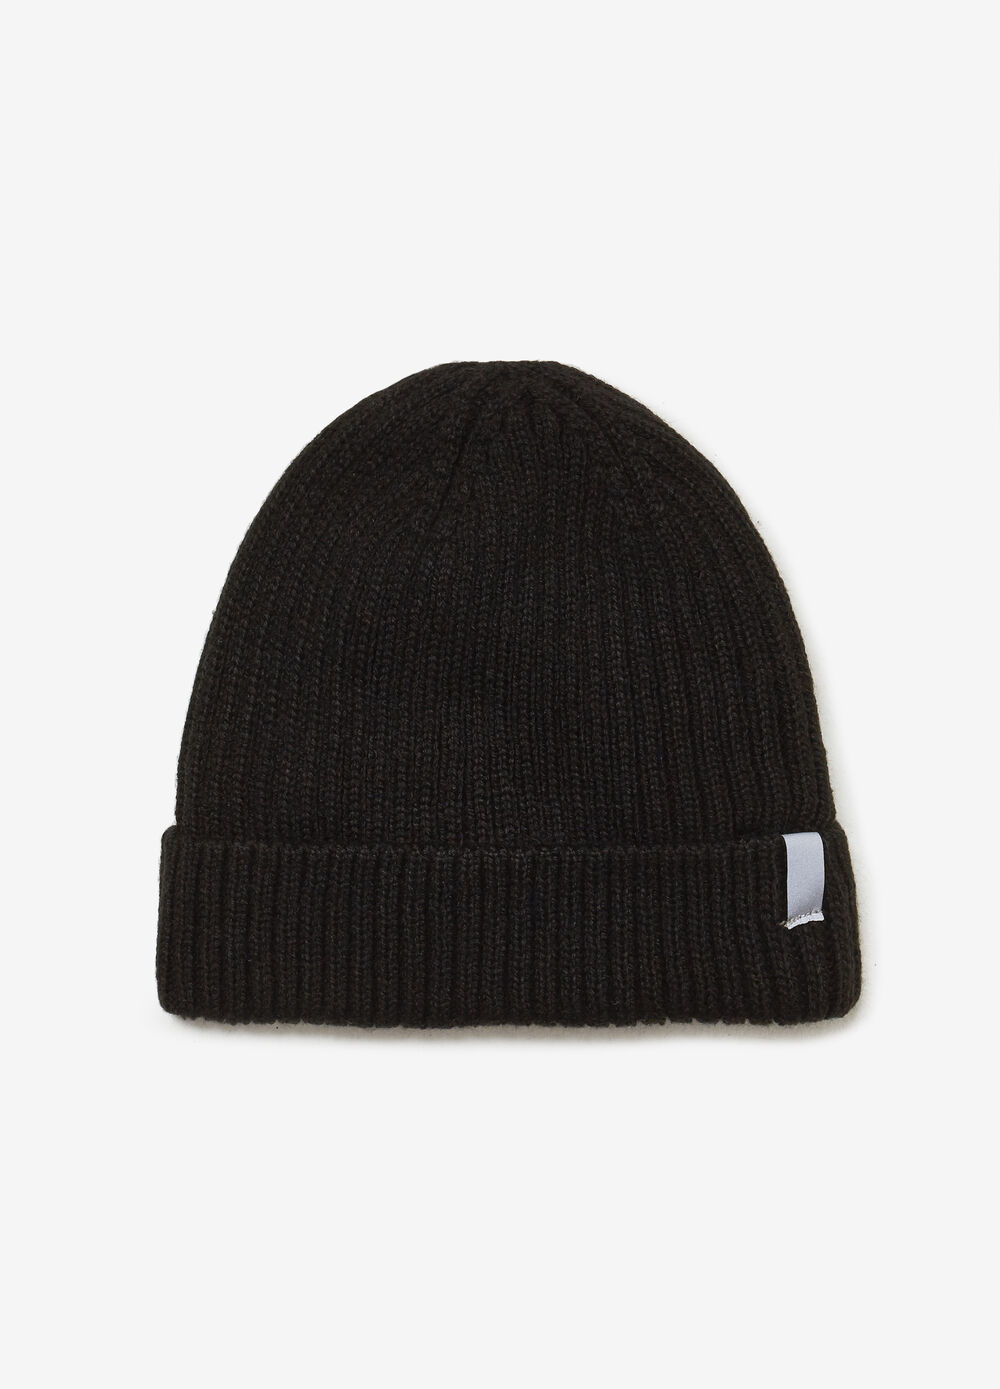 Ribbed knit hat with patch